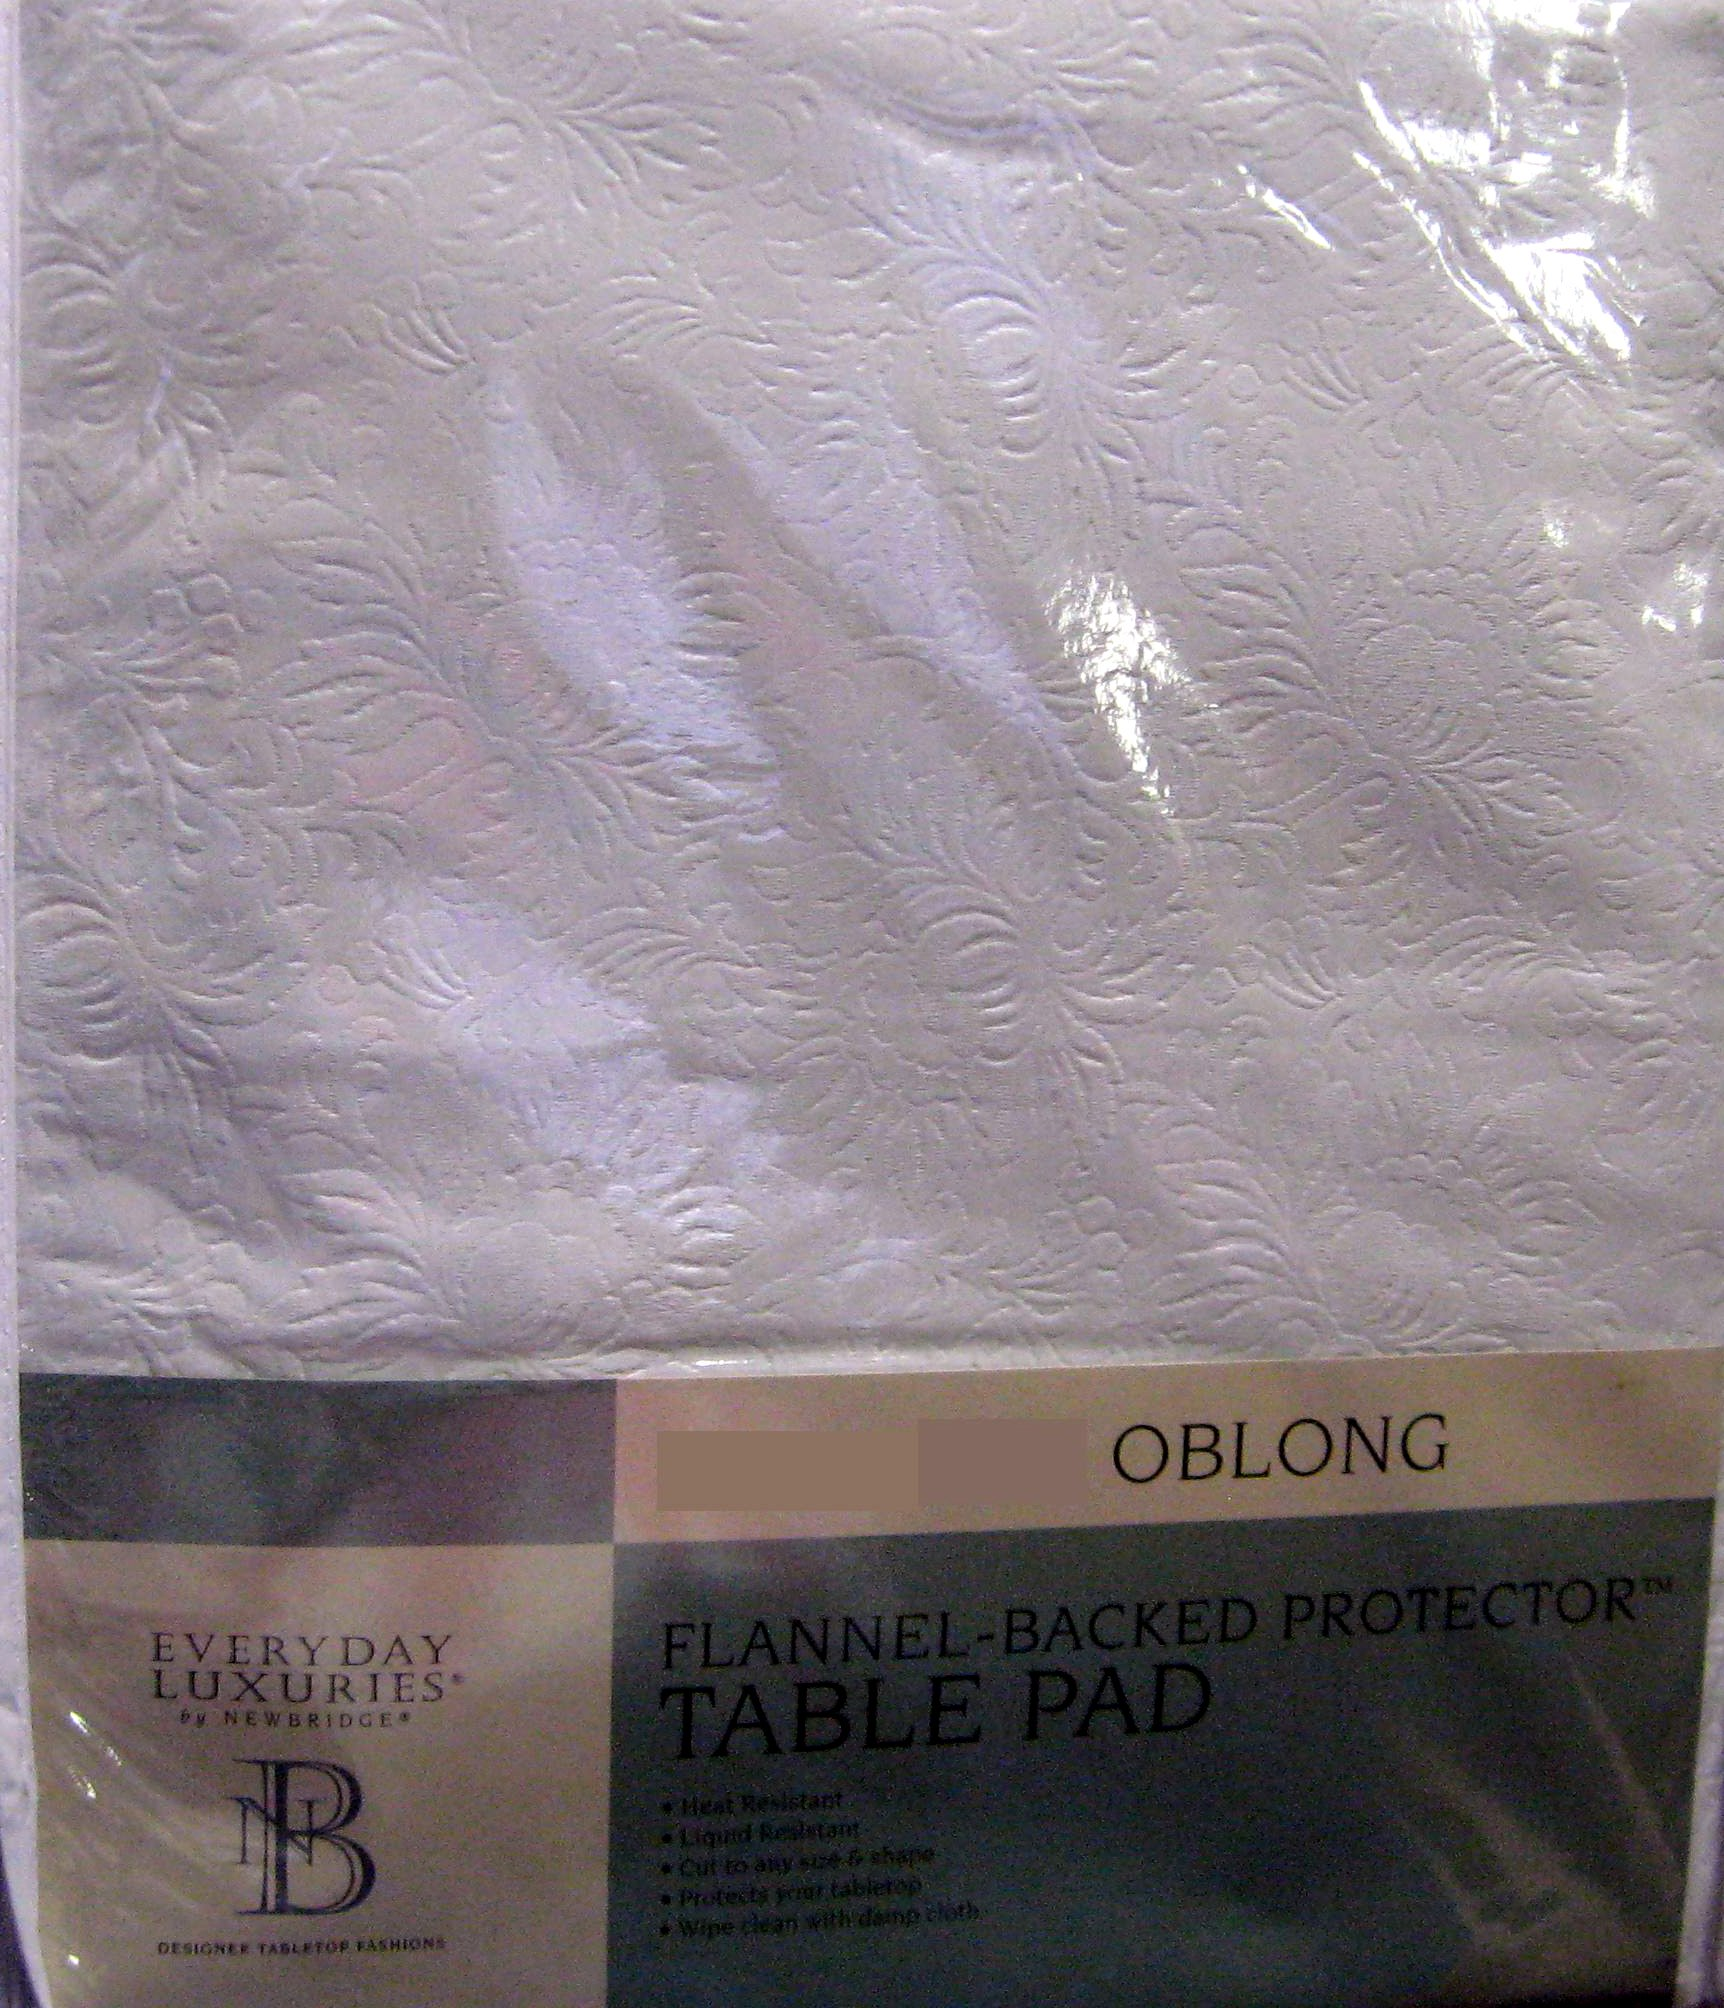 Table Pad Vinyl Flannel Backed Protector 52'' x 108'' Heat Resistant Cut to Size & Shape